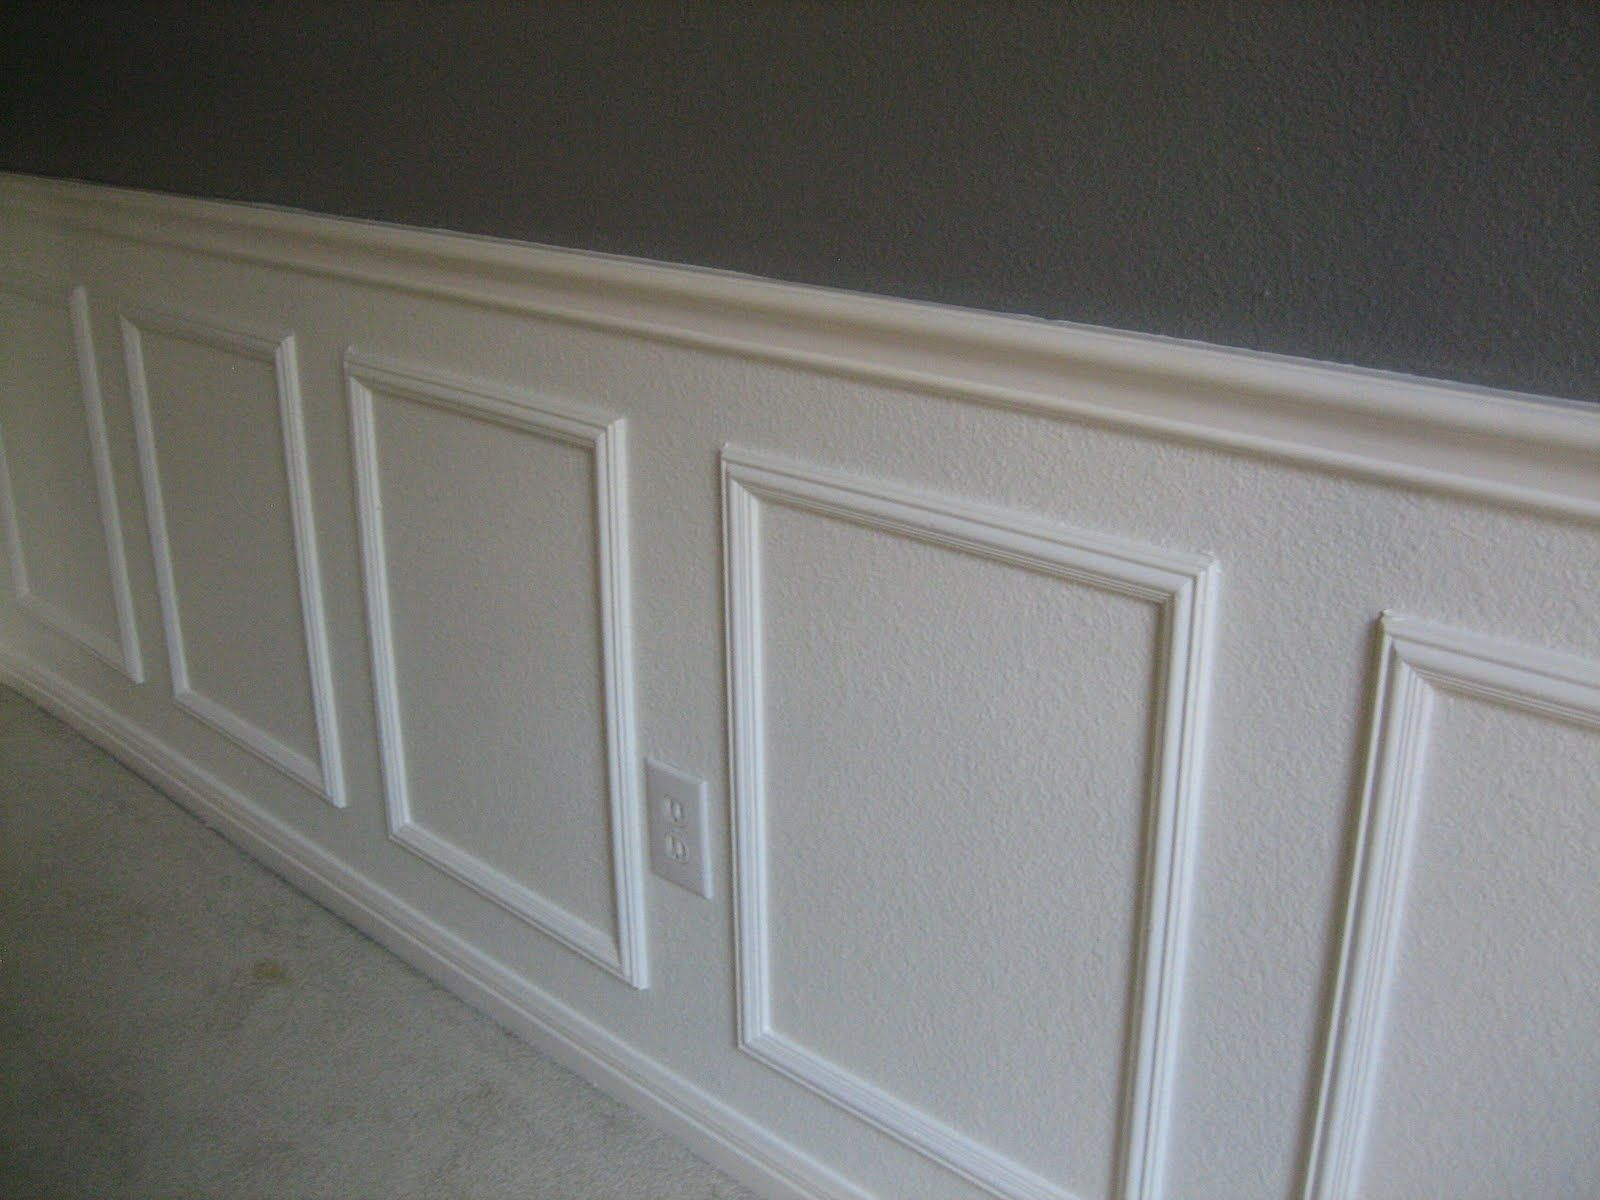 Wainscoting success how to install wainscoting without Images of wainscoting in bedrooms